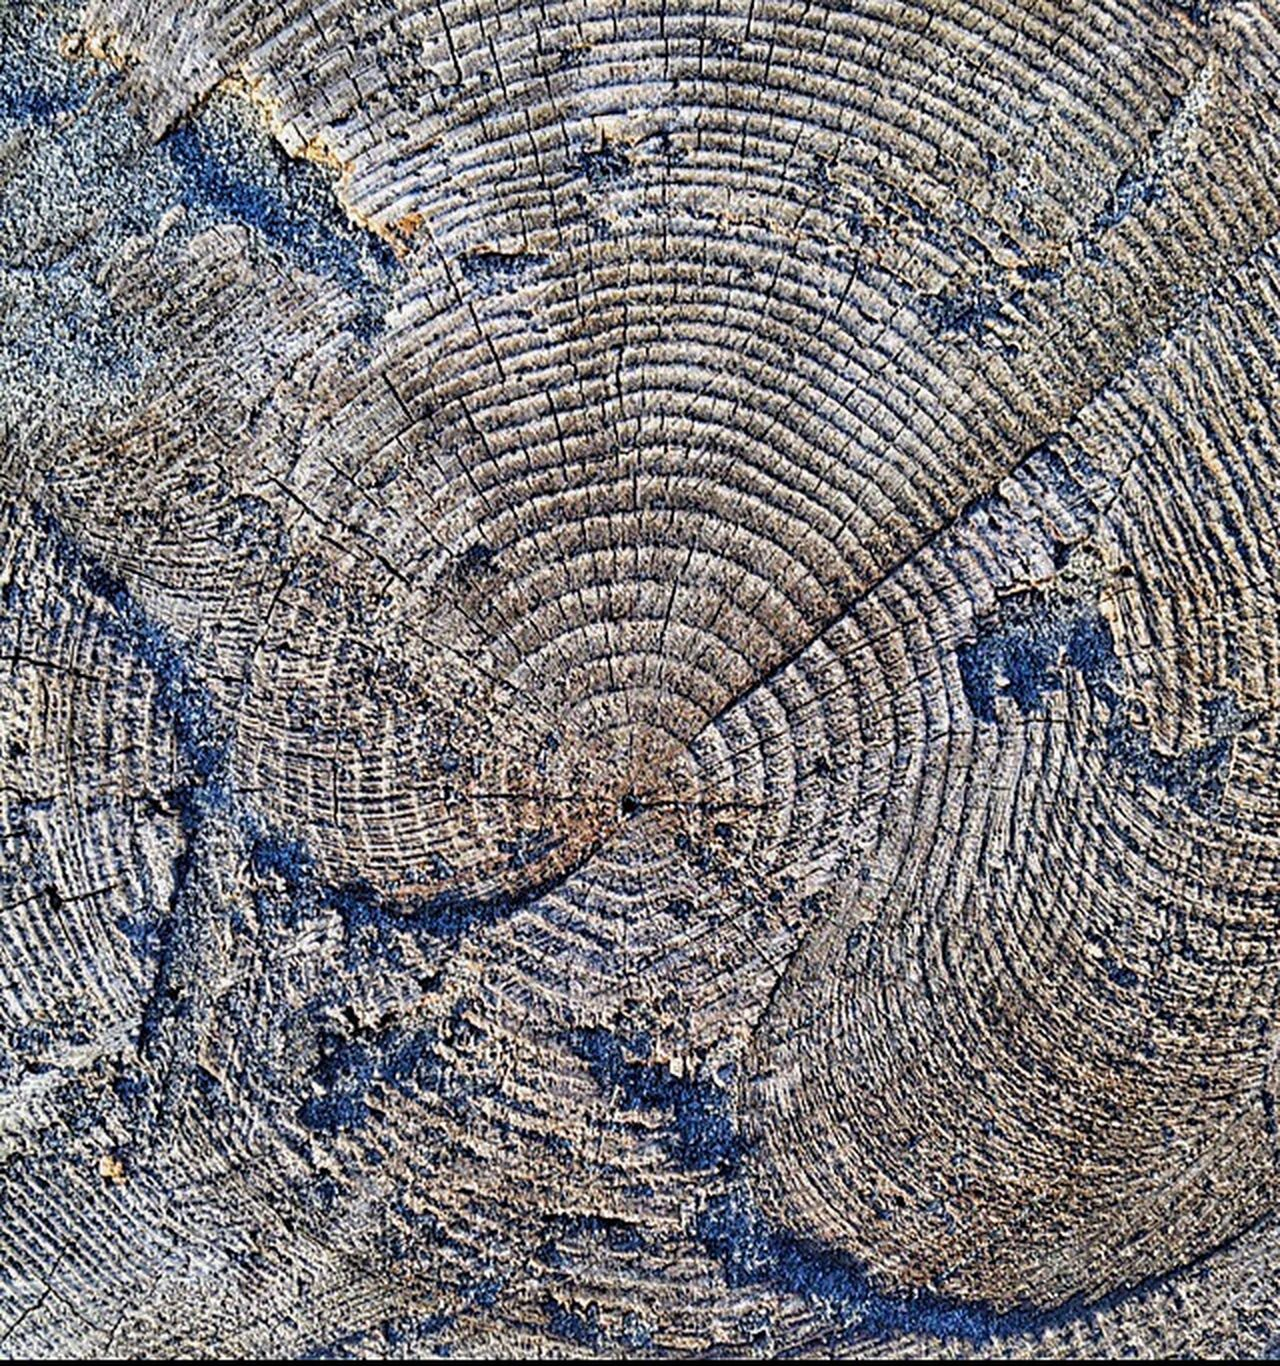 Patterns & Textures Driftwood Nature Still Life Views Perspective Shapes In Nature  Beach Photography Nature Photography Textures And Surfaces Abstractions Landscape #Nature #photography Textured  Beach Texture Patterns In Nature Old Oregon Coast Patterns Abstract Nature